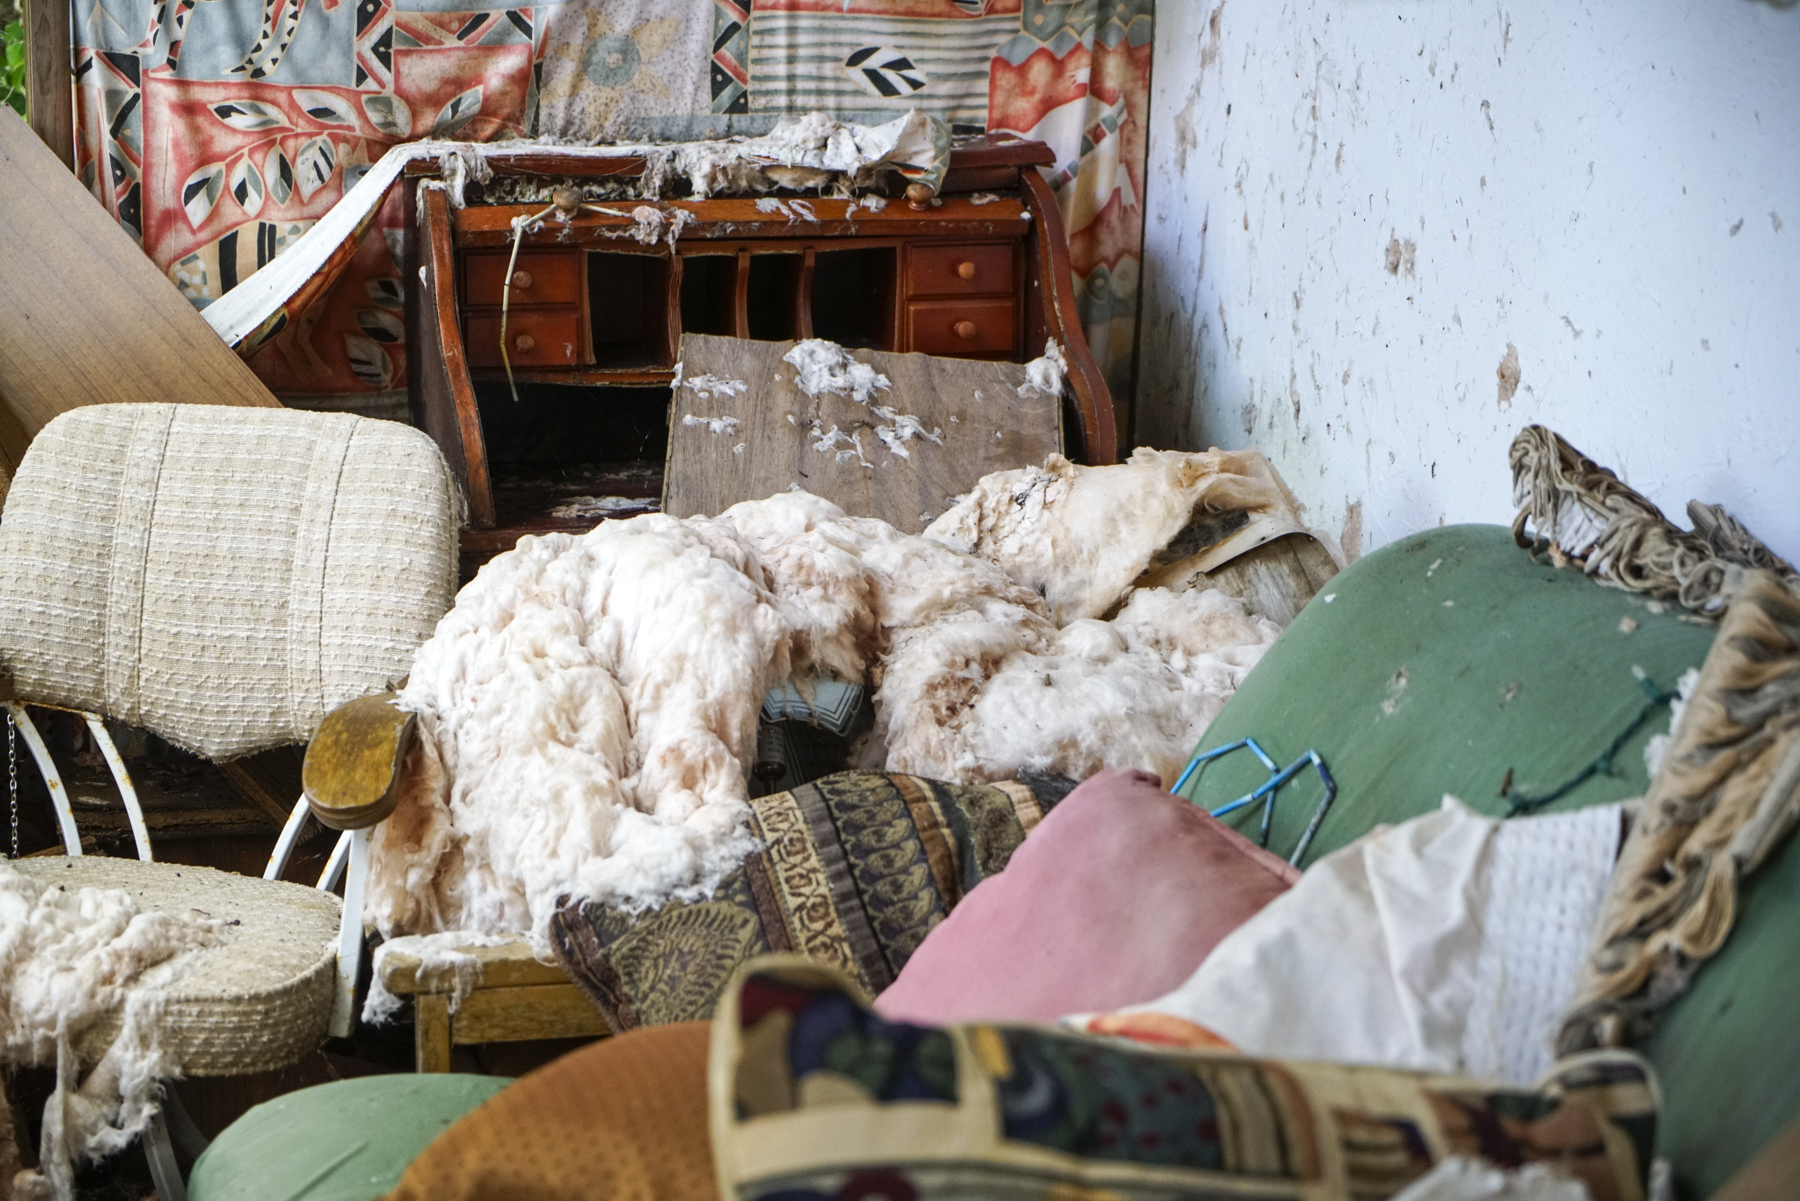 The small guesthouse on the property remained untouched. Insulation was ripped from the walls and water-soaked furniture remained.